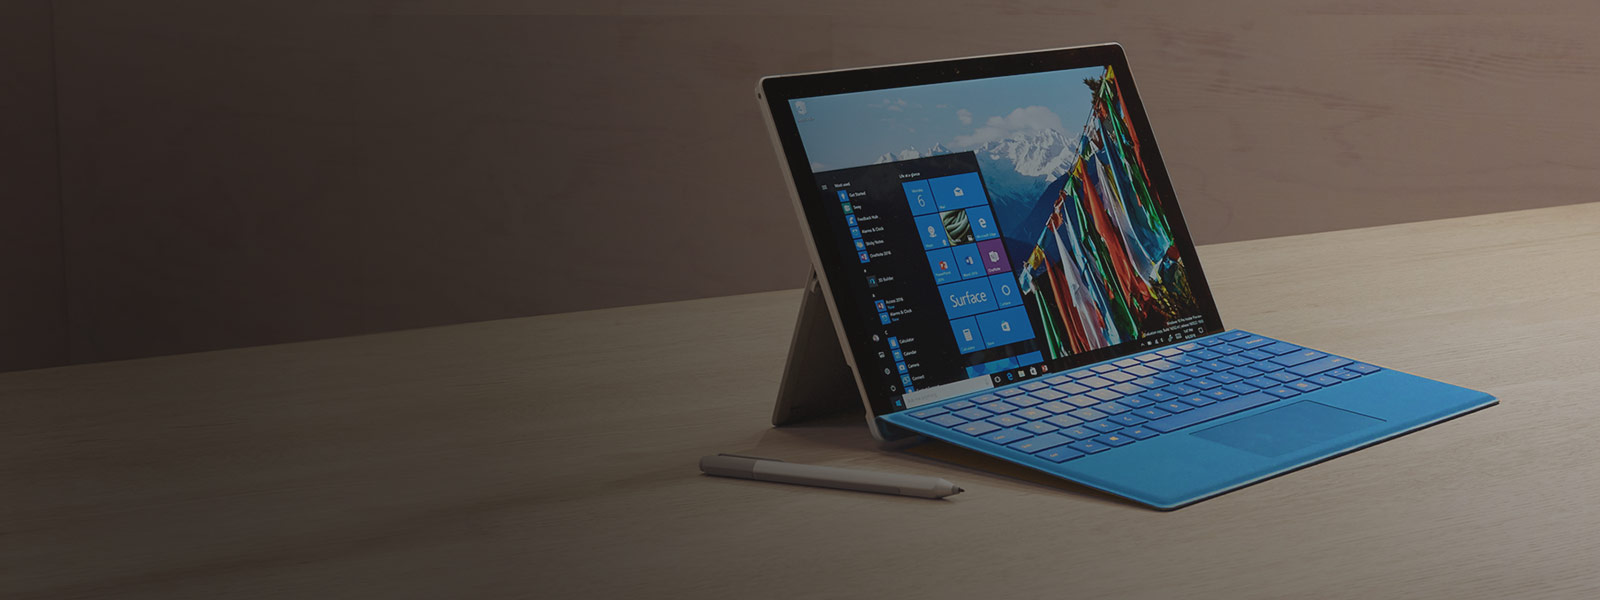 Surface Pro 4 with Pen, shop now